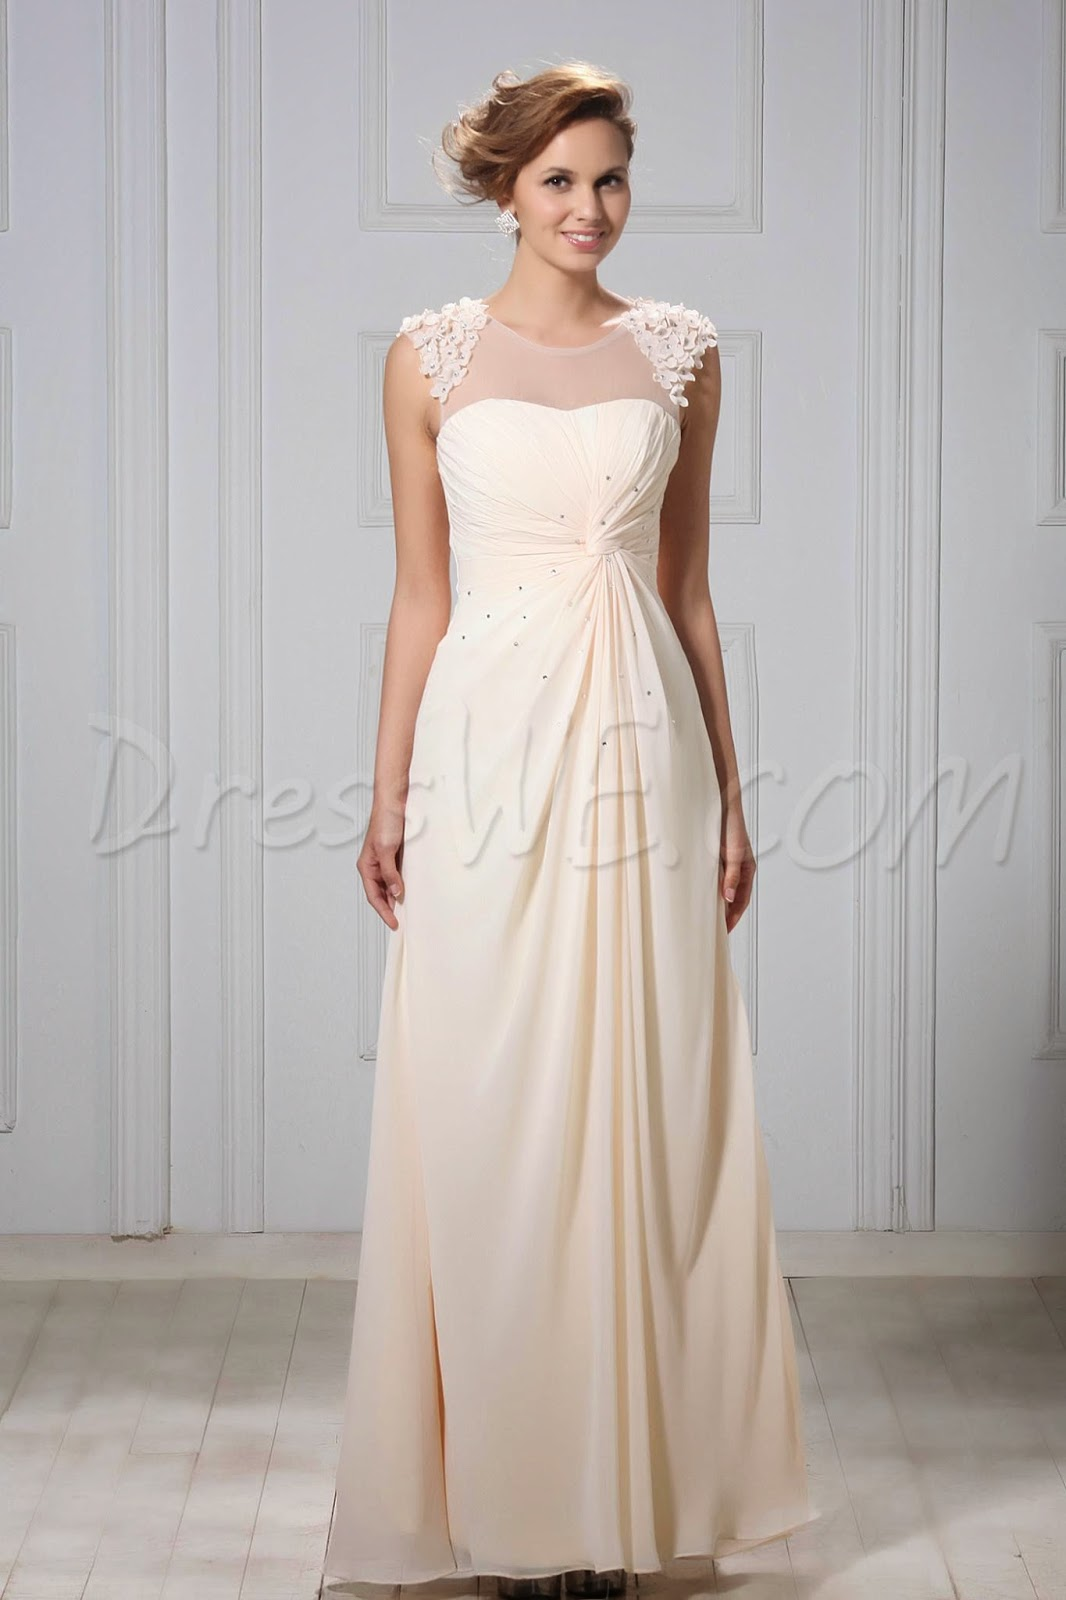 mother of bride dresses, mother of bride shoes, bridal dresses, bridesmaid dresses, celebrity dresses, cheap wedding dresses, Cocktail dresses, dresses, evening dresses, LBD, mermaid dresses, prom dresses, wedding dresses online, dresswe, dresswe review,Cocktail dresses, dresses, evening dresses, pink dress, mermaid dresses, fashion, prom dresses, long evening dress with slit, boat neck dress, dresswe, dresswe review,beauty , fashion,beauty and fashion,beauty blog, fashion blog , indian beauty blog,indian fashion blog, beauty and fashion blog, indian beauty and fashion blog, indian bloggers, indian beauty bloggers, indian fashion bloggers,indian bloggers online, top 10 indian bloggers, top indian bloggers,top 10 fashion bloggers, indian bloggers on blogspot,home remedies, how to